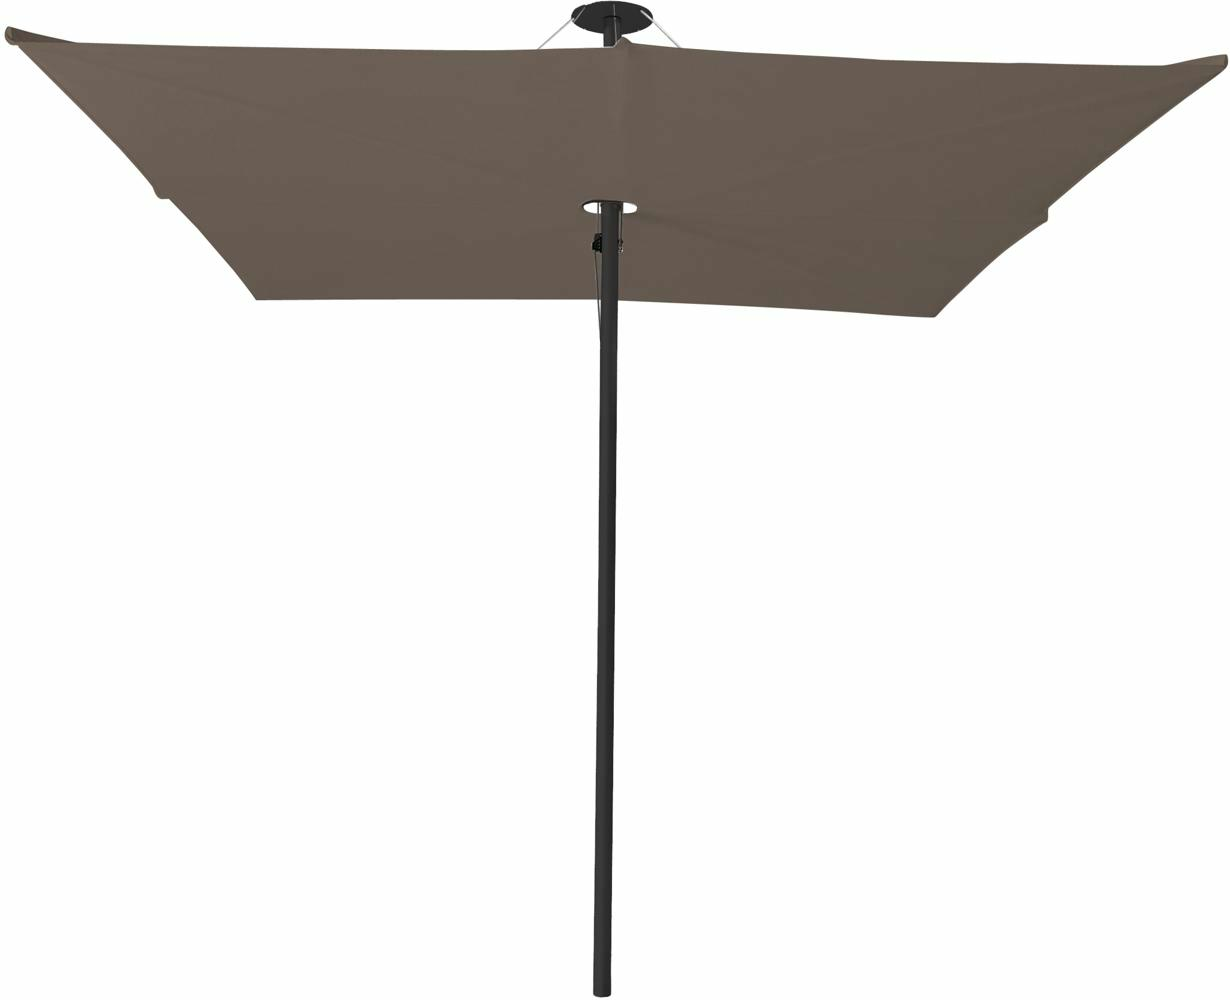 Infina center post umbrella, 2,5 m square, with frame in Dusk and Solidum Taupe canopy.